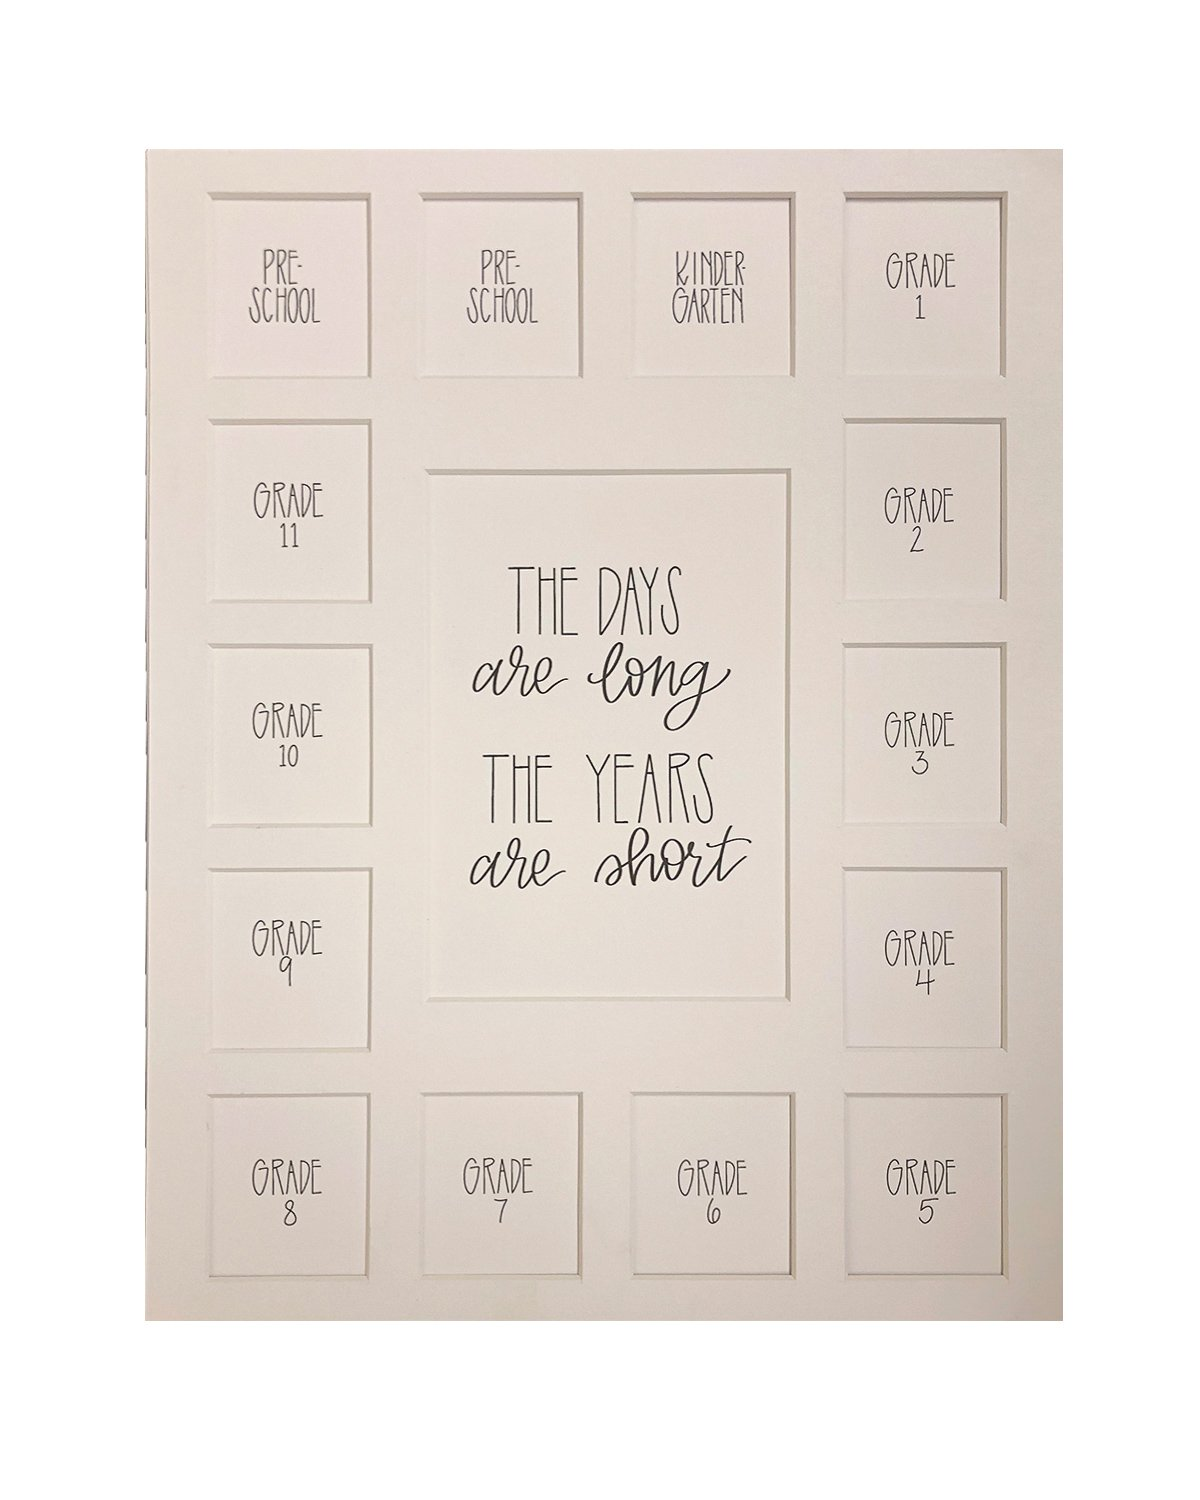 School Days Picture Mat with Multiple Openings - School Years Photo Collage - The Days Are Long Picture Mat - Pre-School & Kindergarten to 12th Grade Graduation (15 Photos, 2 Pre School - 12th, White) by All Things For Mom